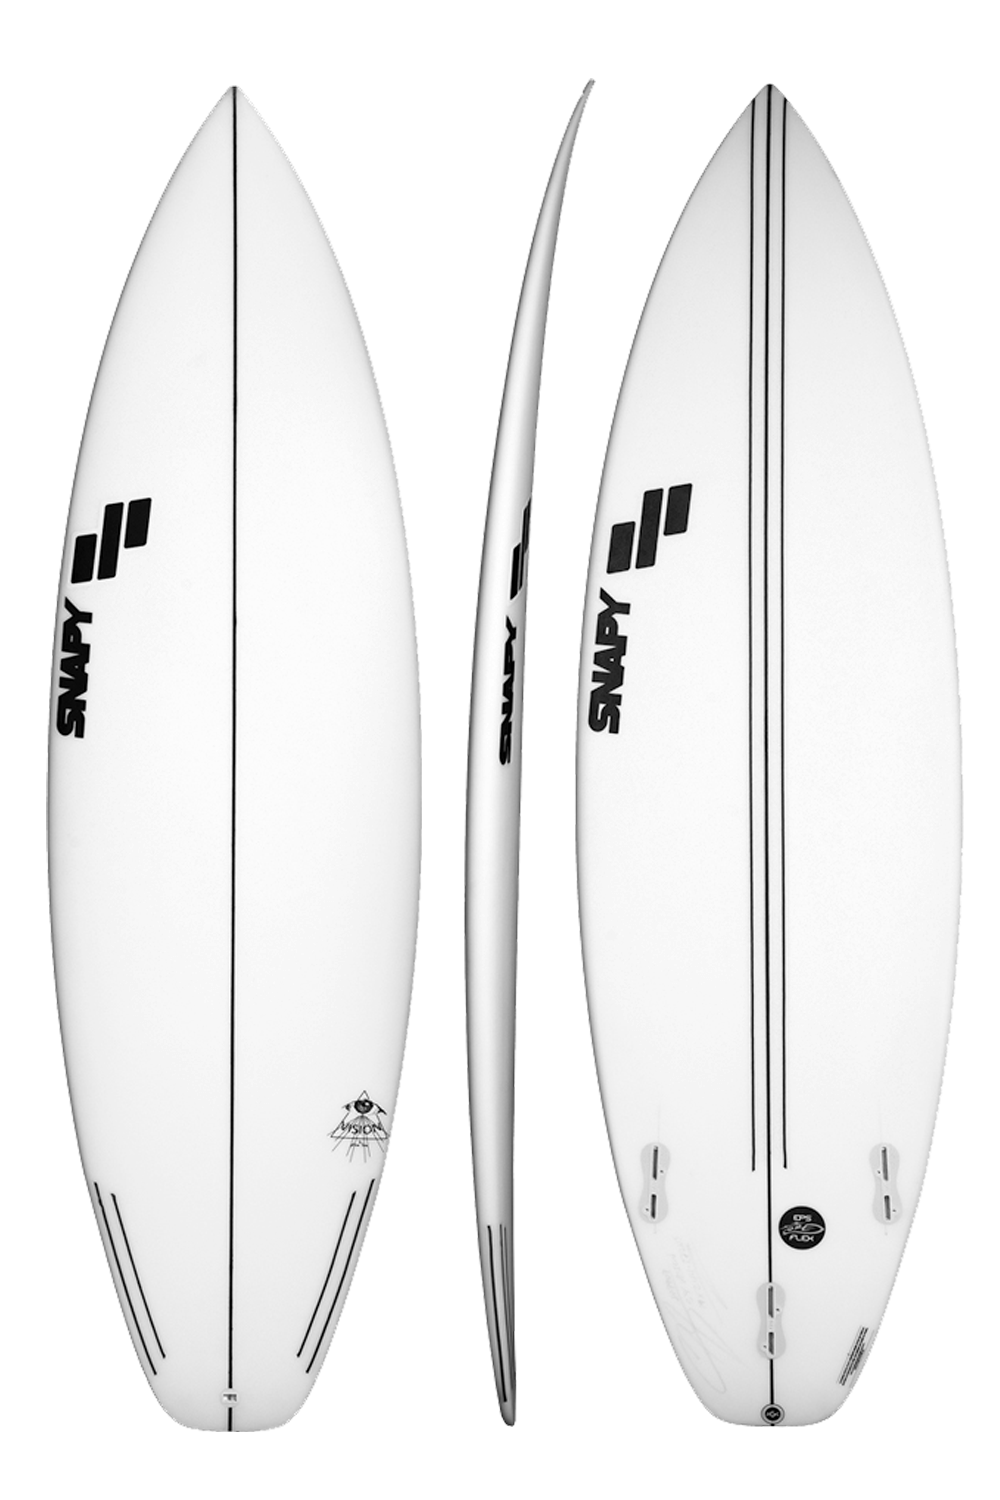 Vision | SNAPY SURFBOARDS